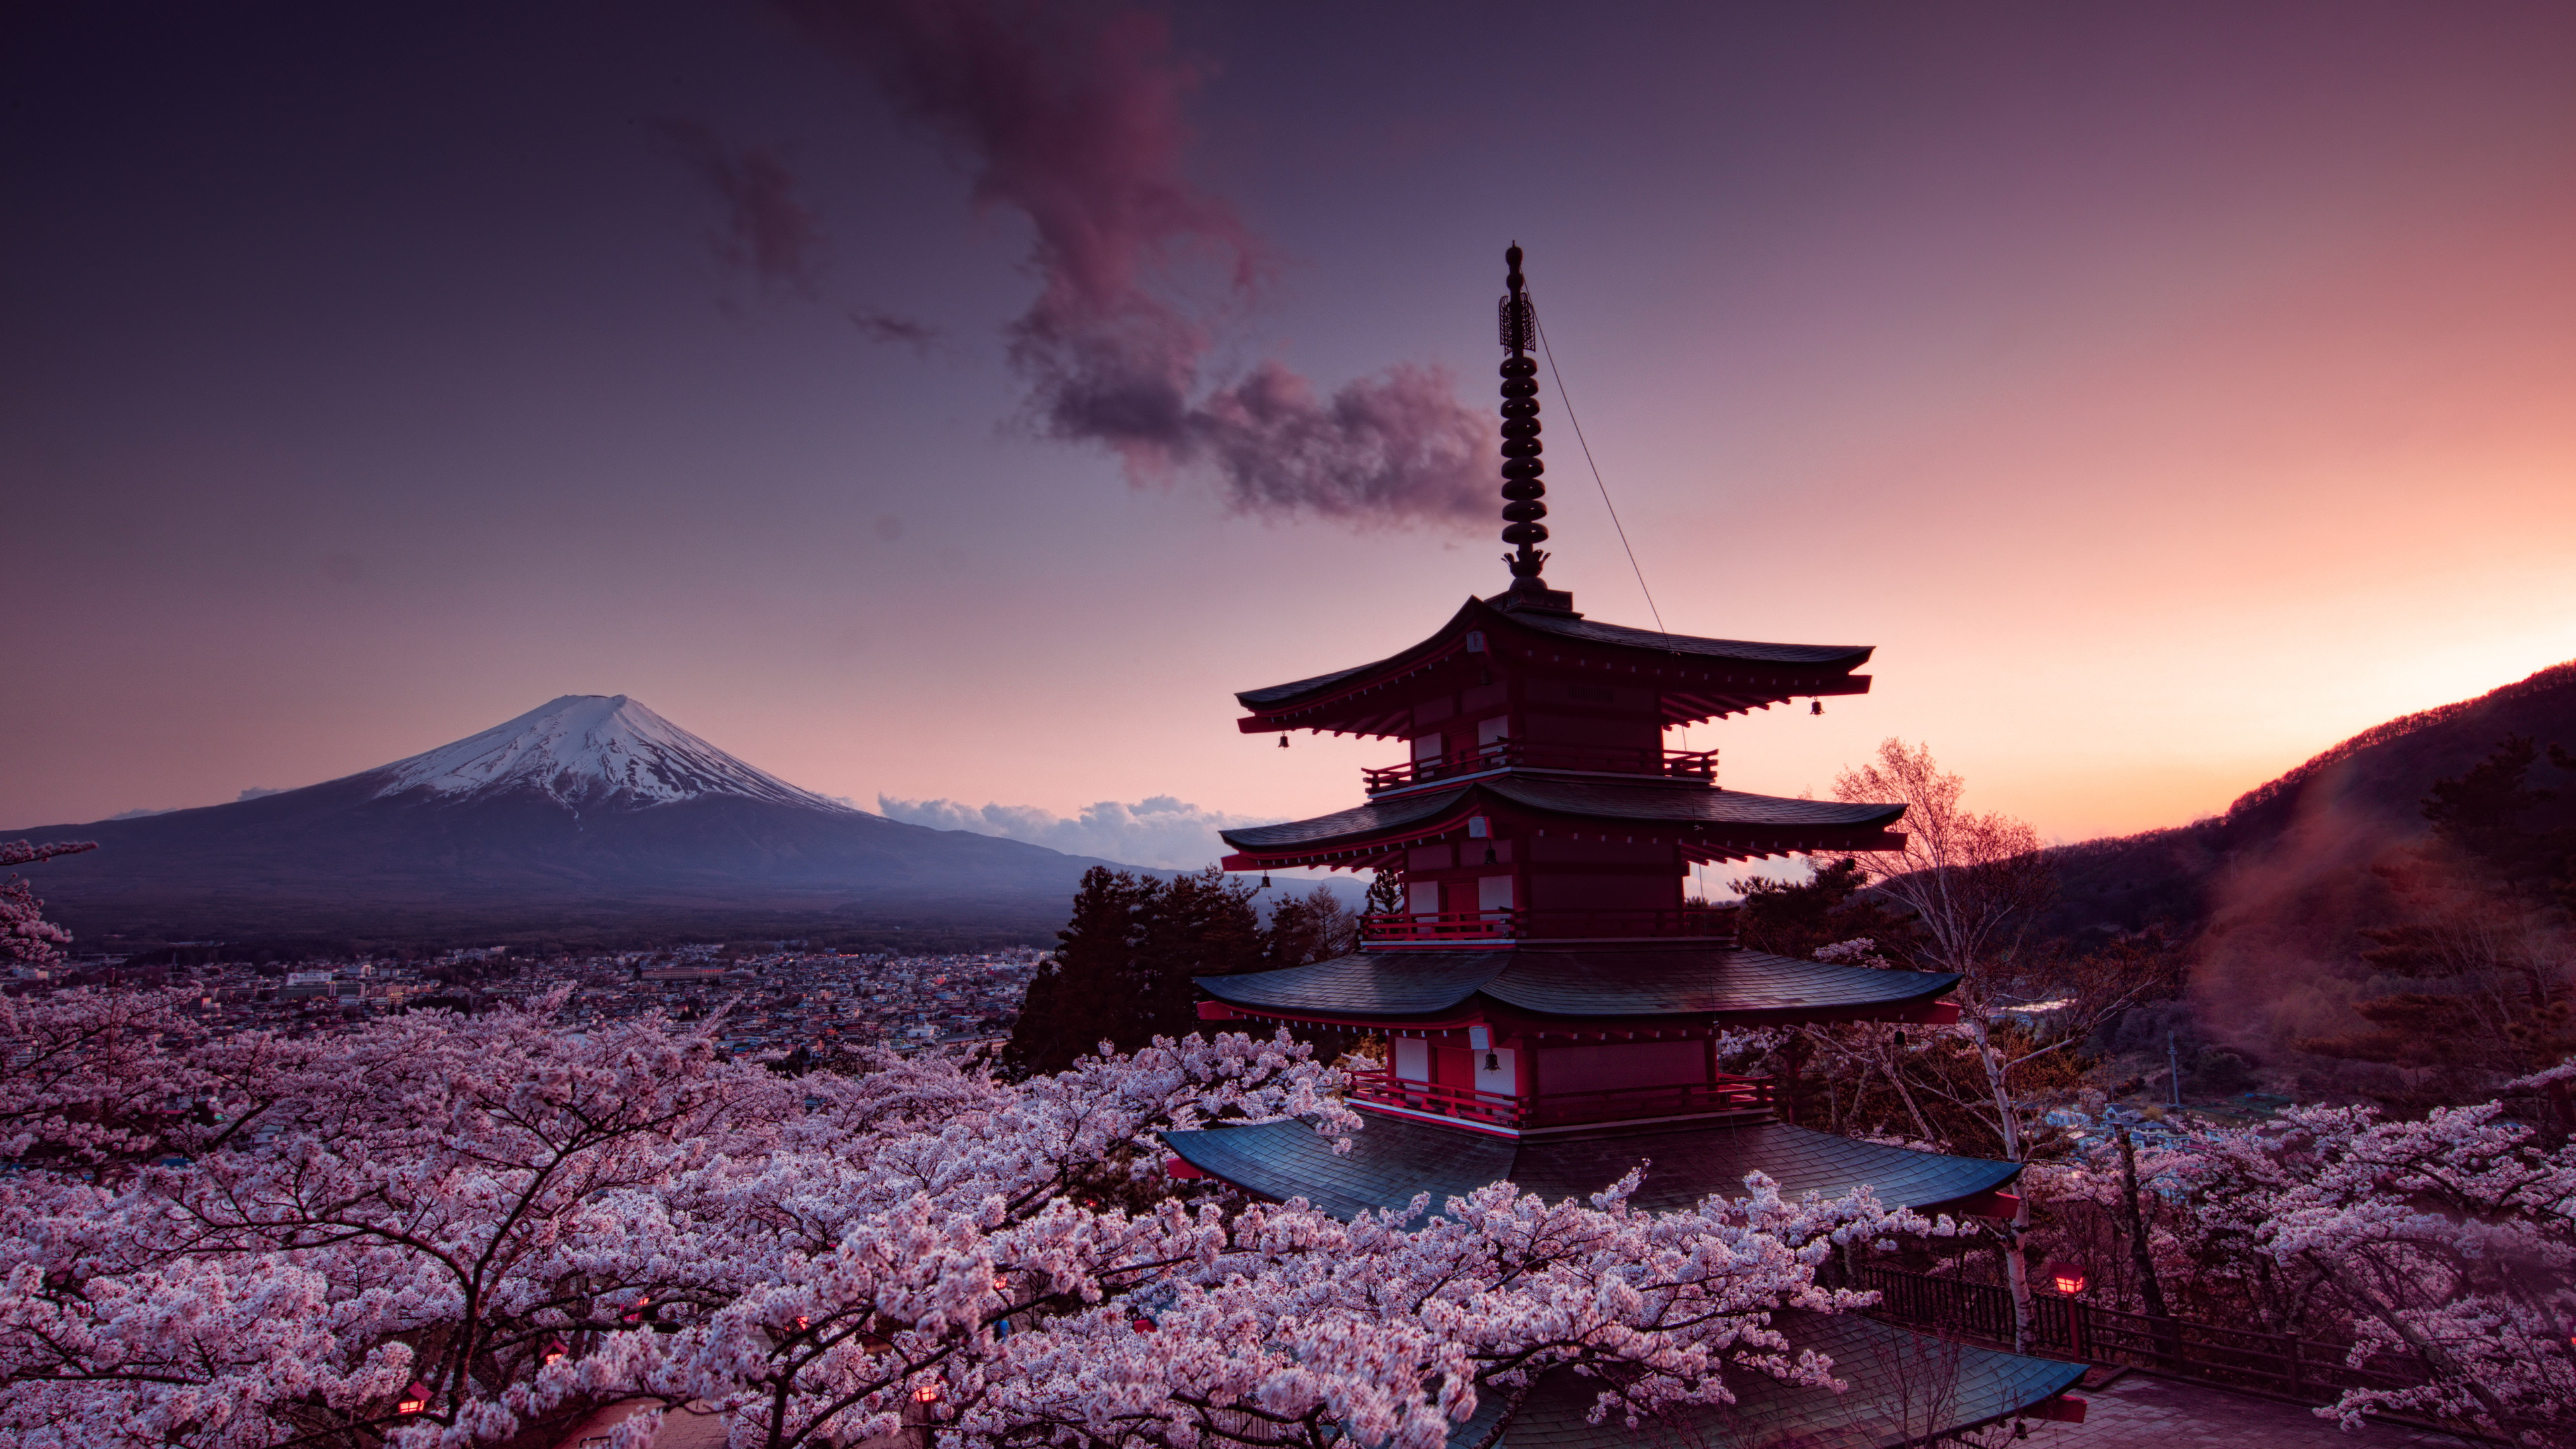 Wallpaper 4k Churei Tower Mount Fuji In Japan 4k 4k